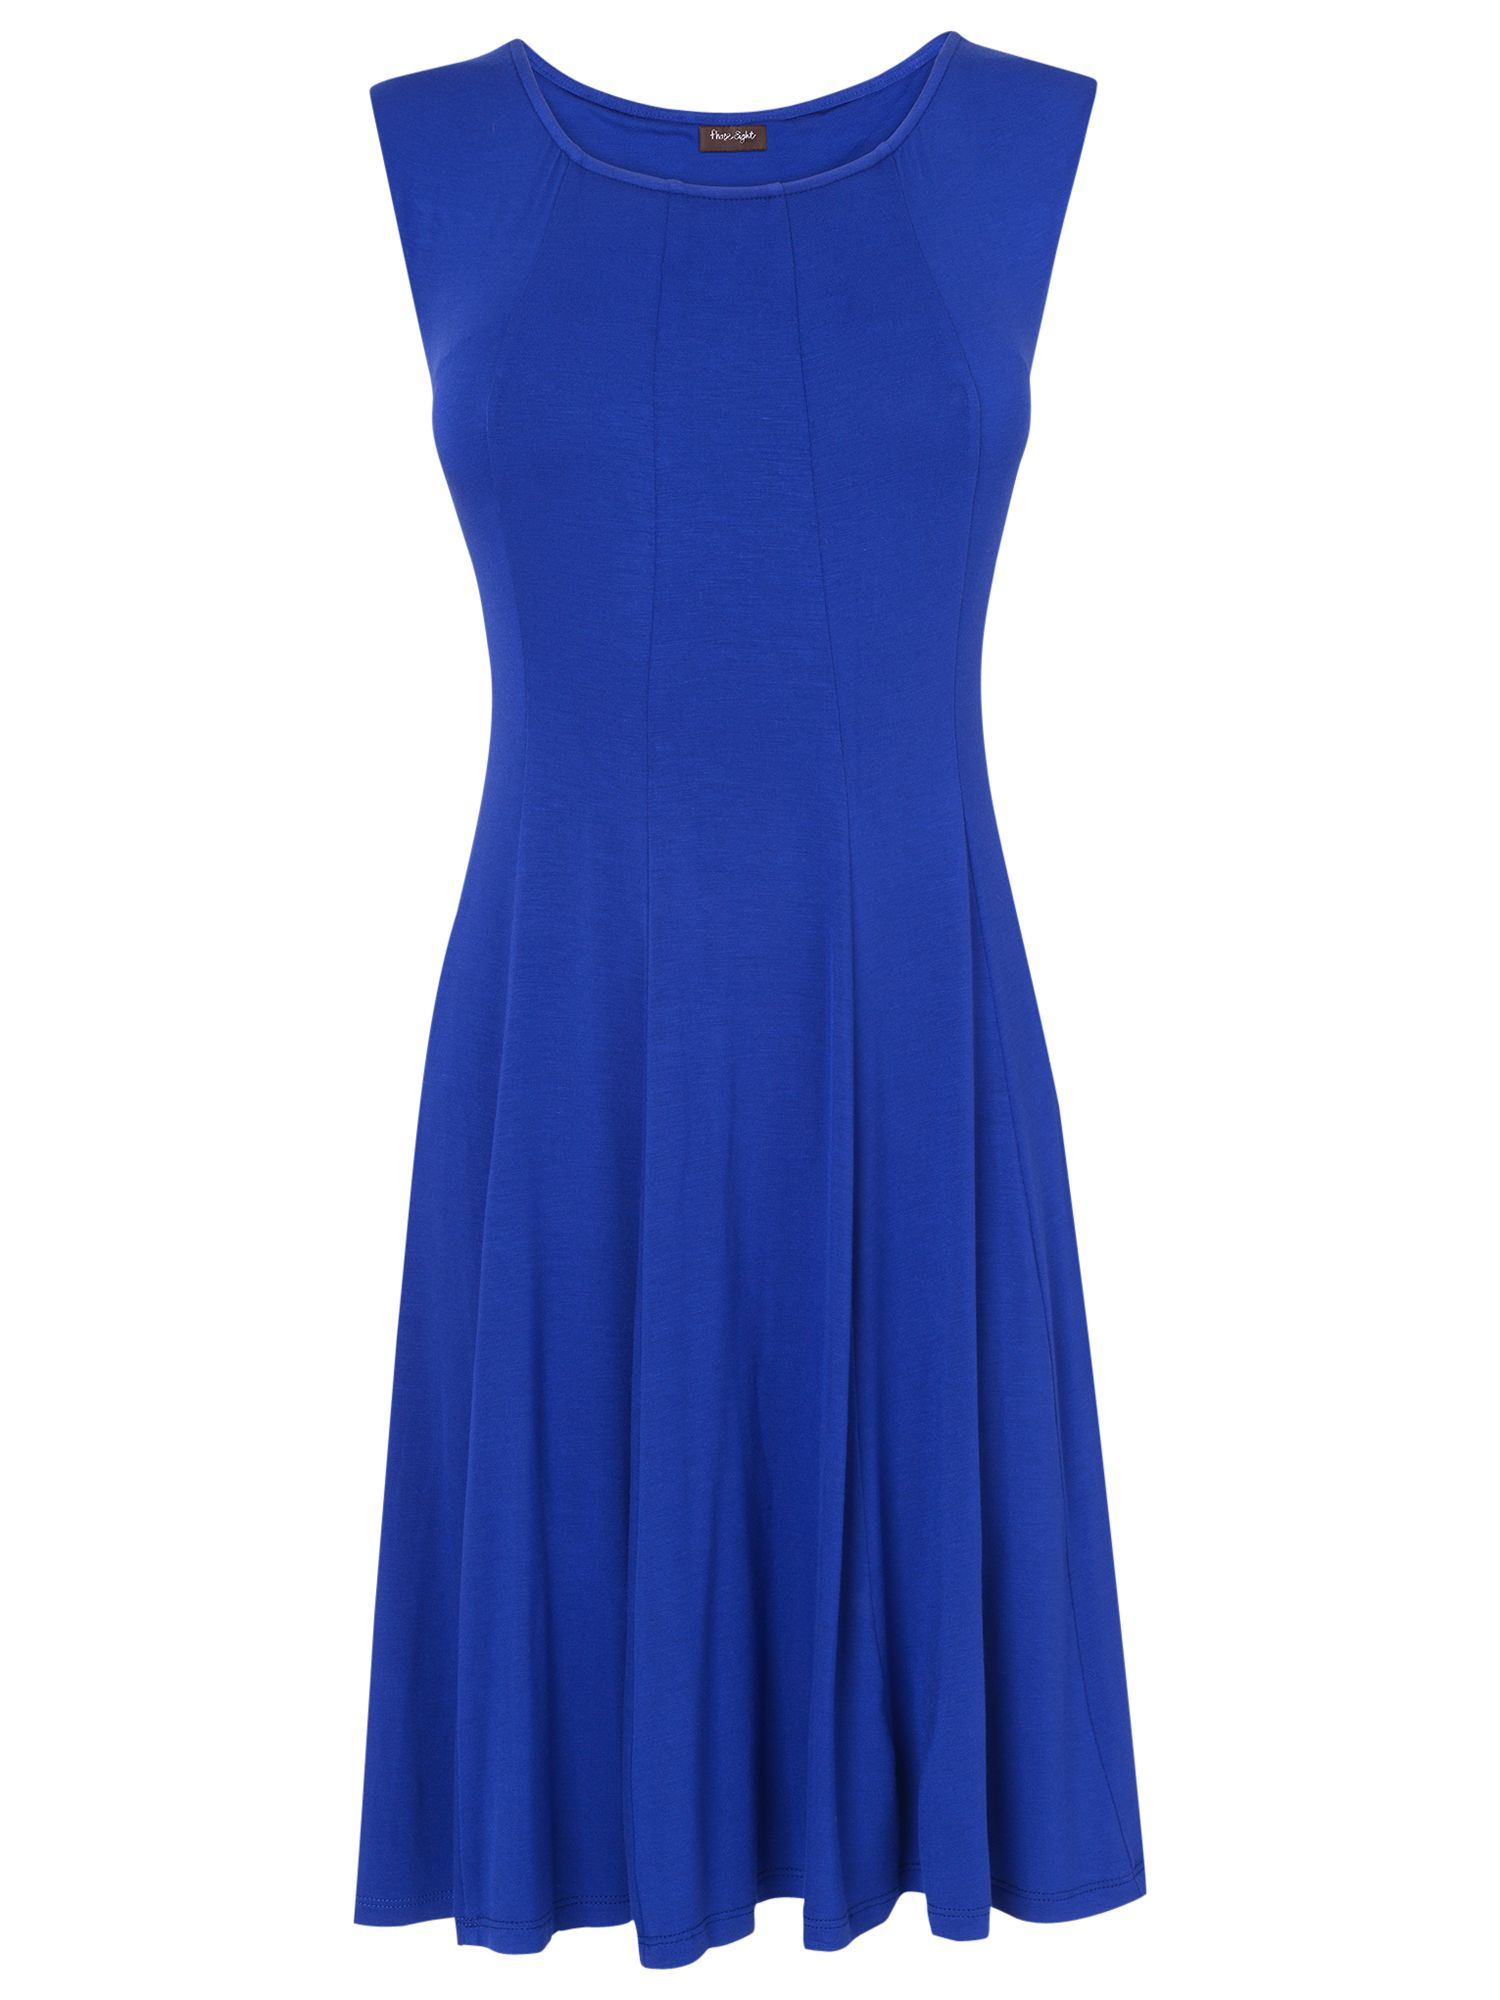 phase eight rosa panelled dress periwinkle, phase, eight, rosa, panelled, dress, periwinkle, phase eight, 10|8, clearance, womenswear offers, womens dresses offers, women, womens dresses, special offers, fashion magazine, brands l-z, inactive womenswear, 1389490